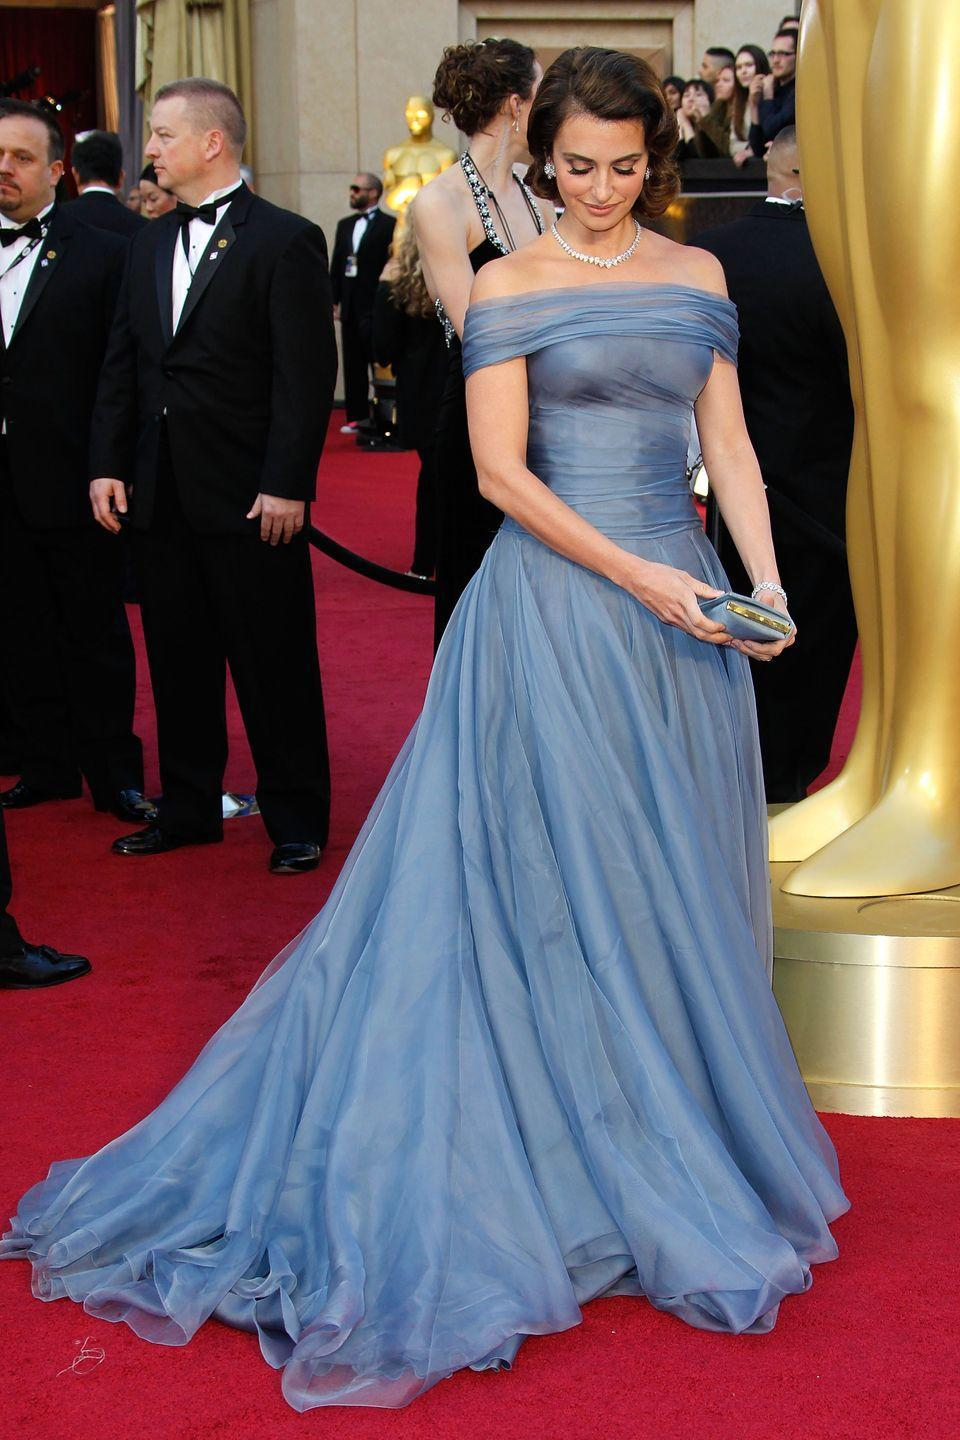 <p>While it may not have been intentional, the dusty-blue Armani Privé gown that Penelope Cruz wore to the 2012 Academy Awards made her look just like Princess Aurora.</p>